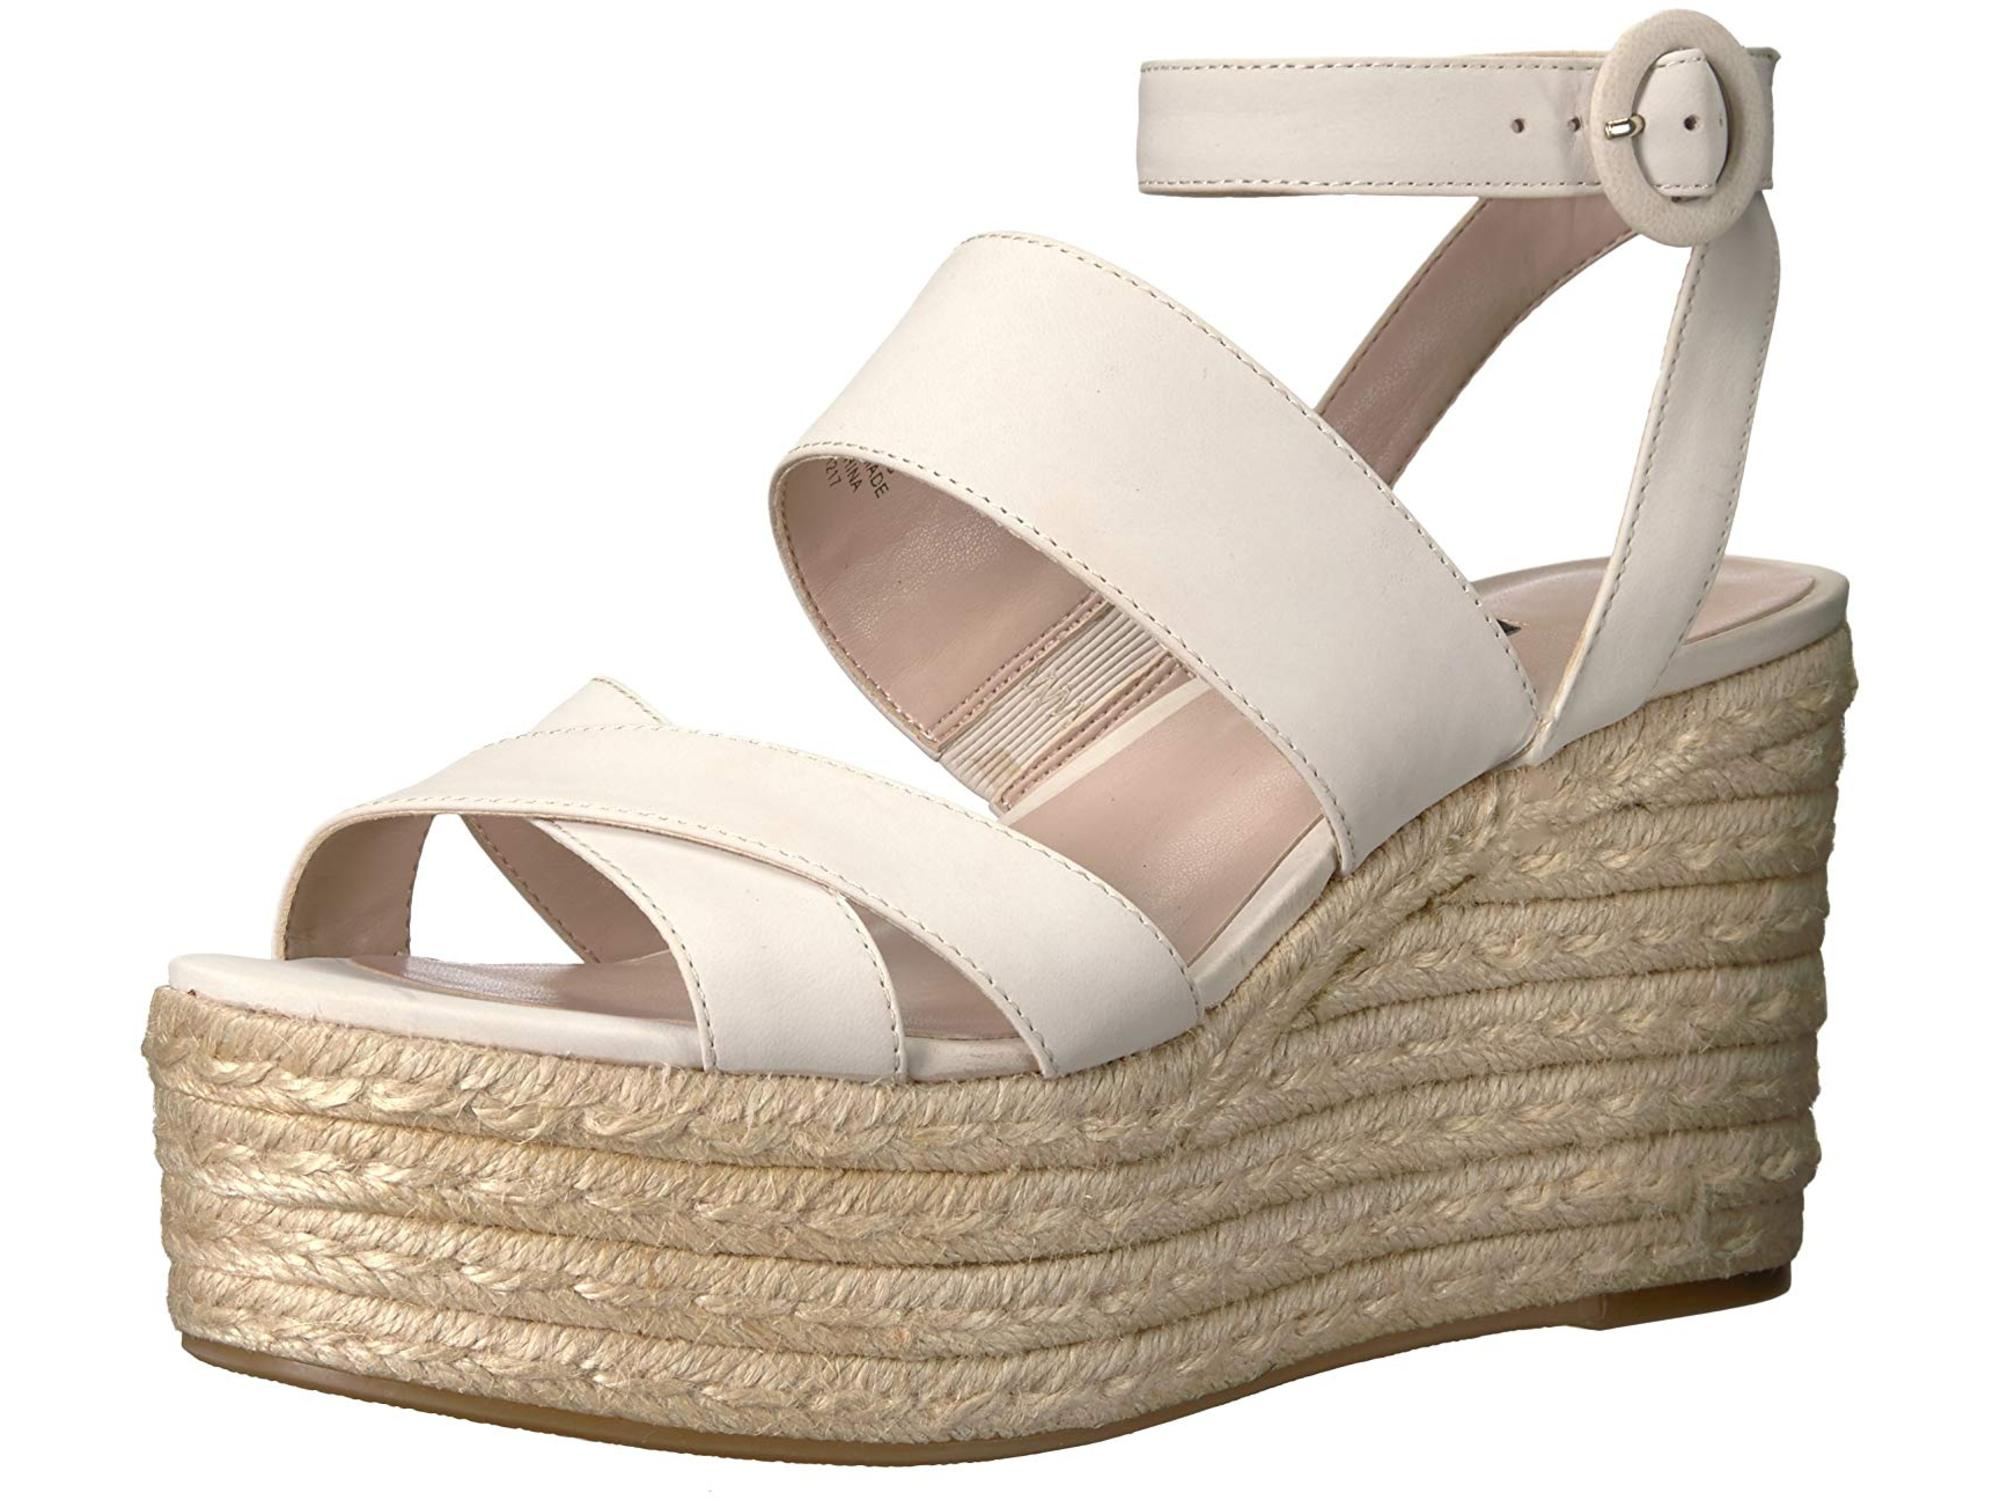 655fec27f0b Nine West Women s KUSHALA Nubuck Wedge Sandal